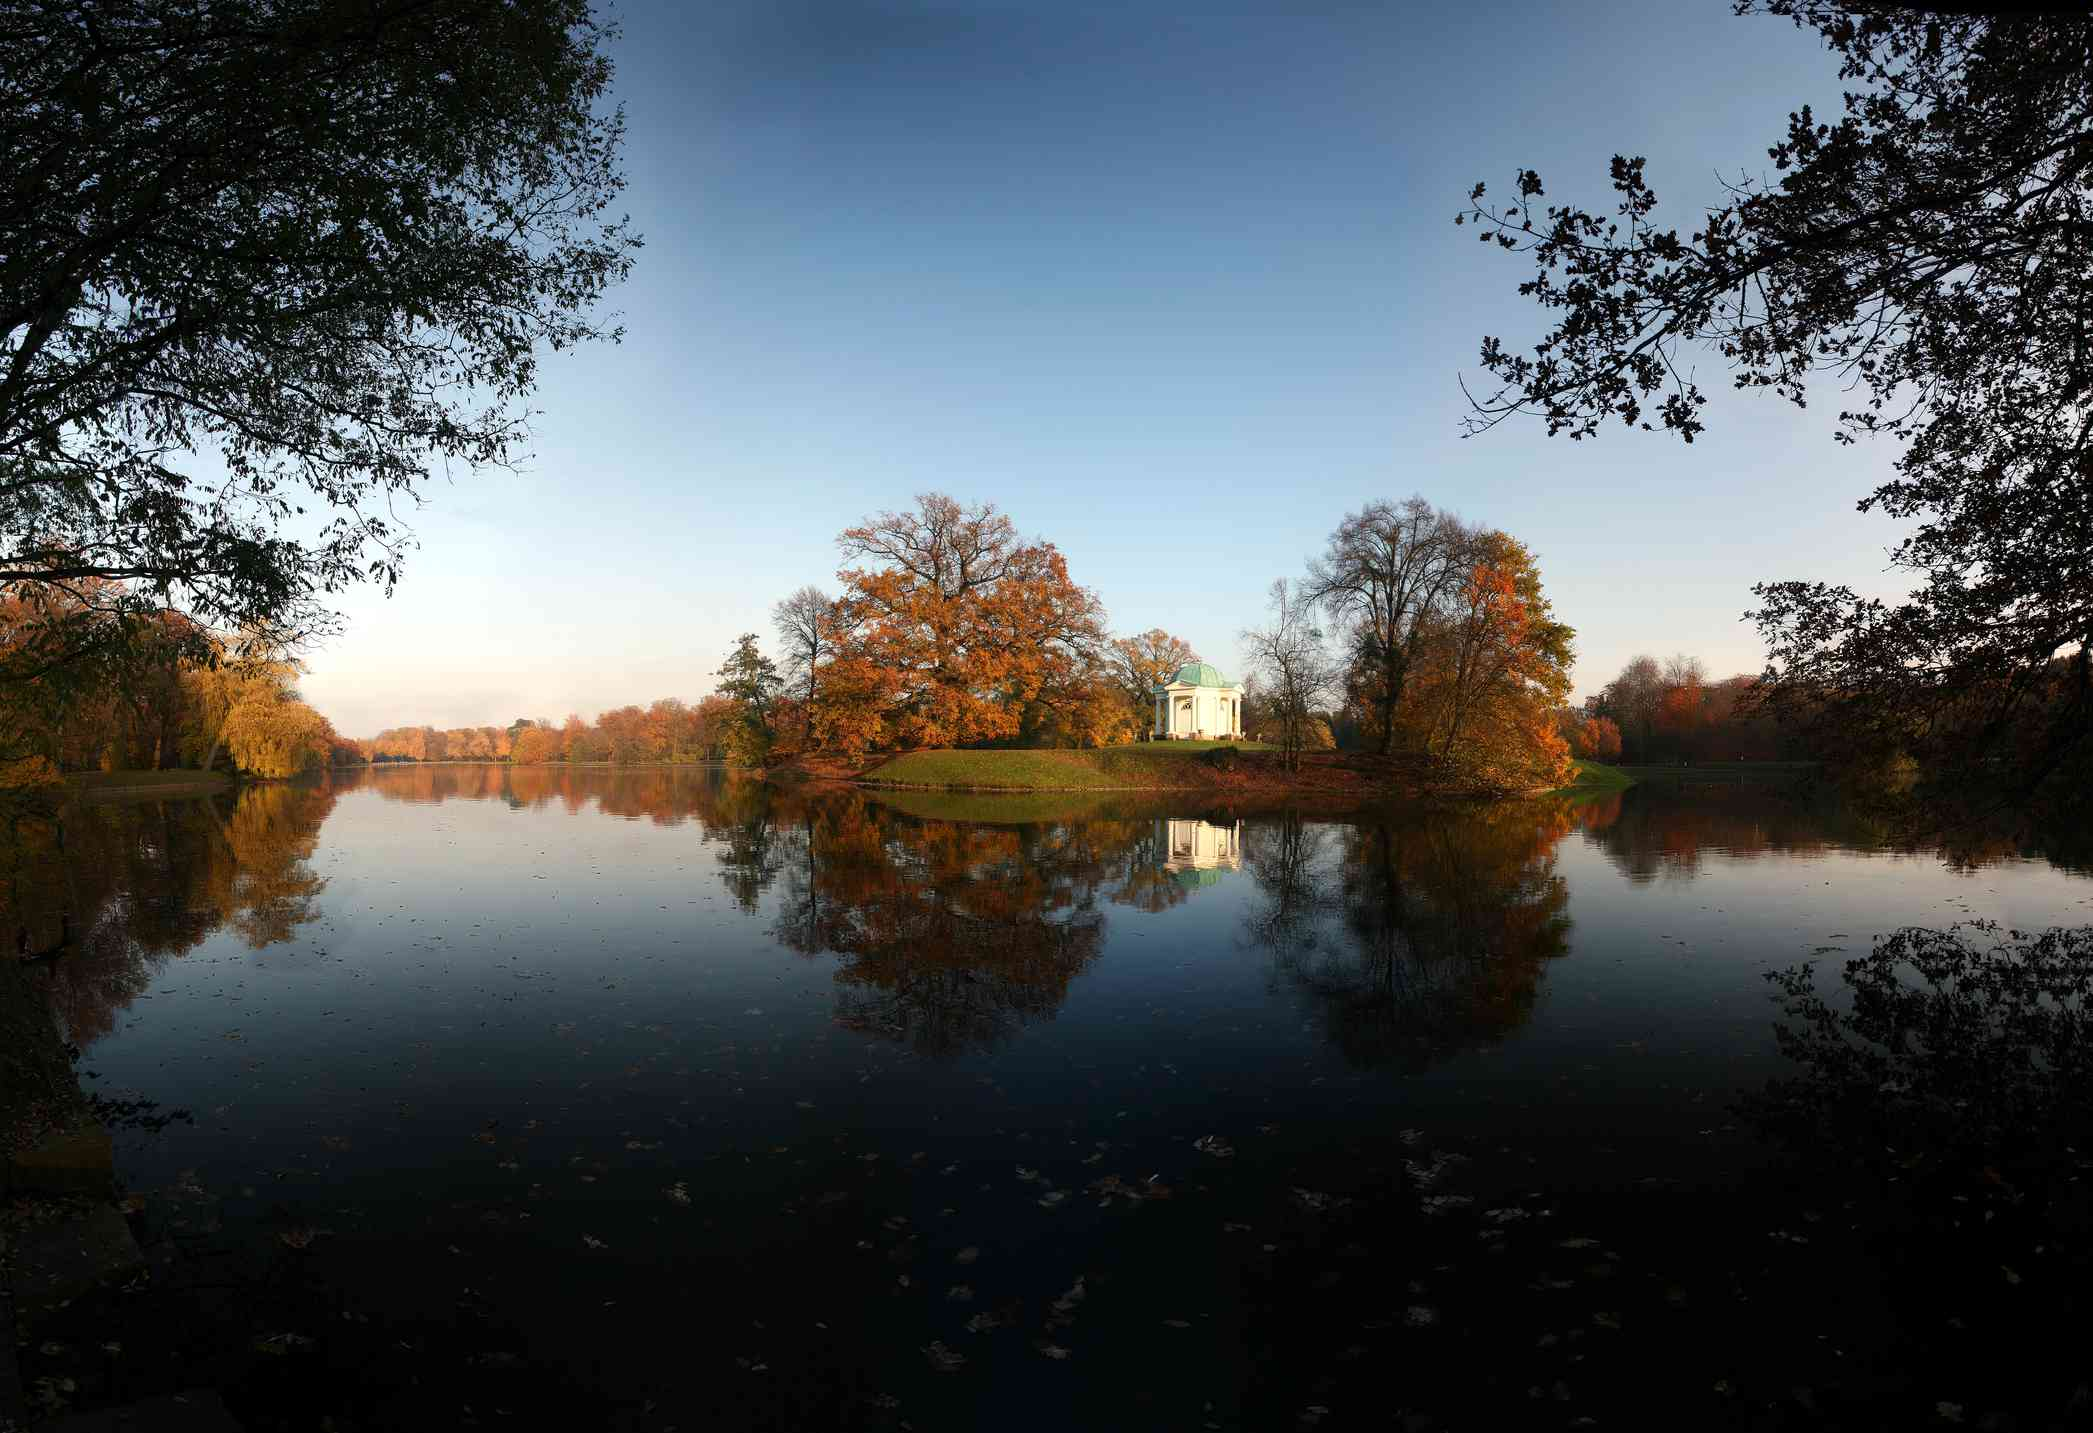 large lake surrounded by trees in autumn in Kassel, Germany's Staatspark Karlsaue